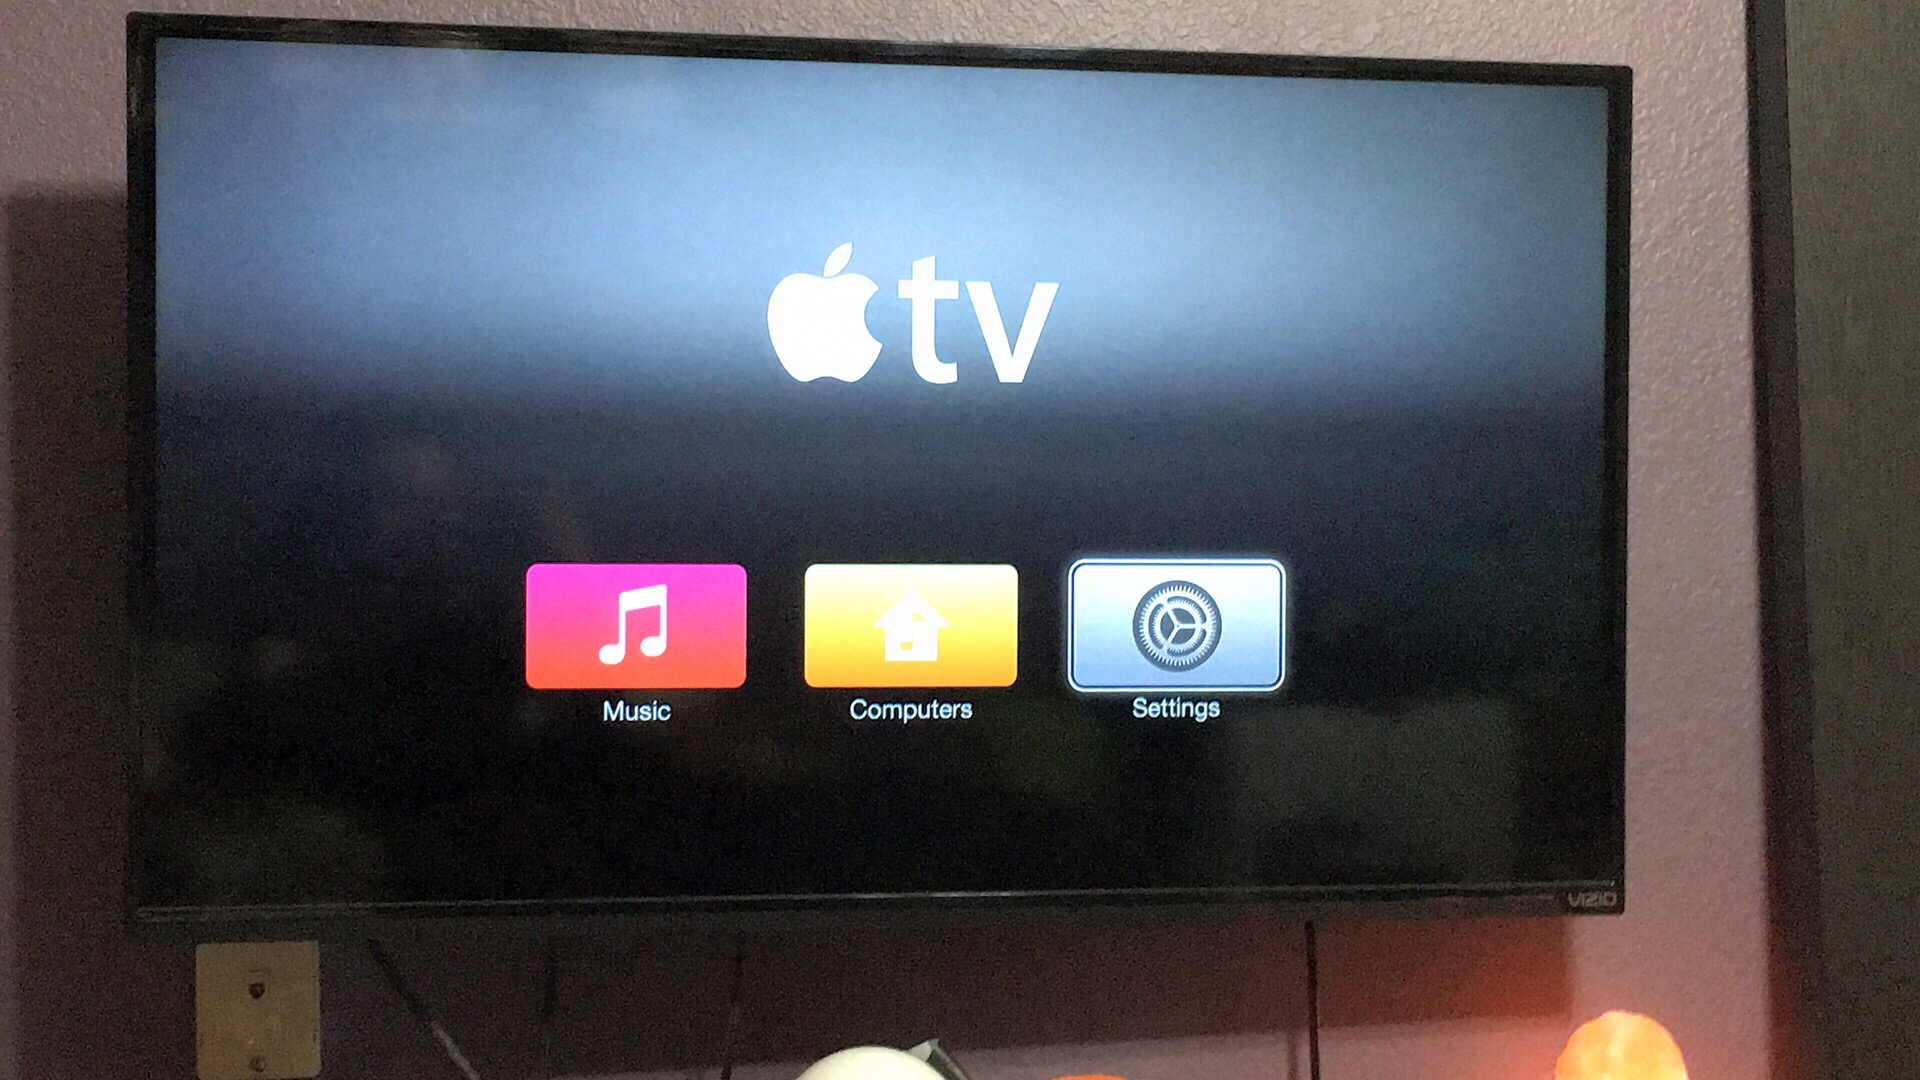 Apple TV 3rd generation issue Computer app